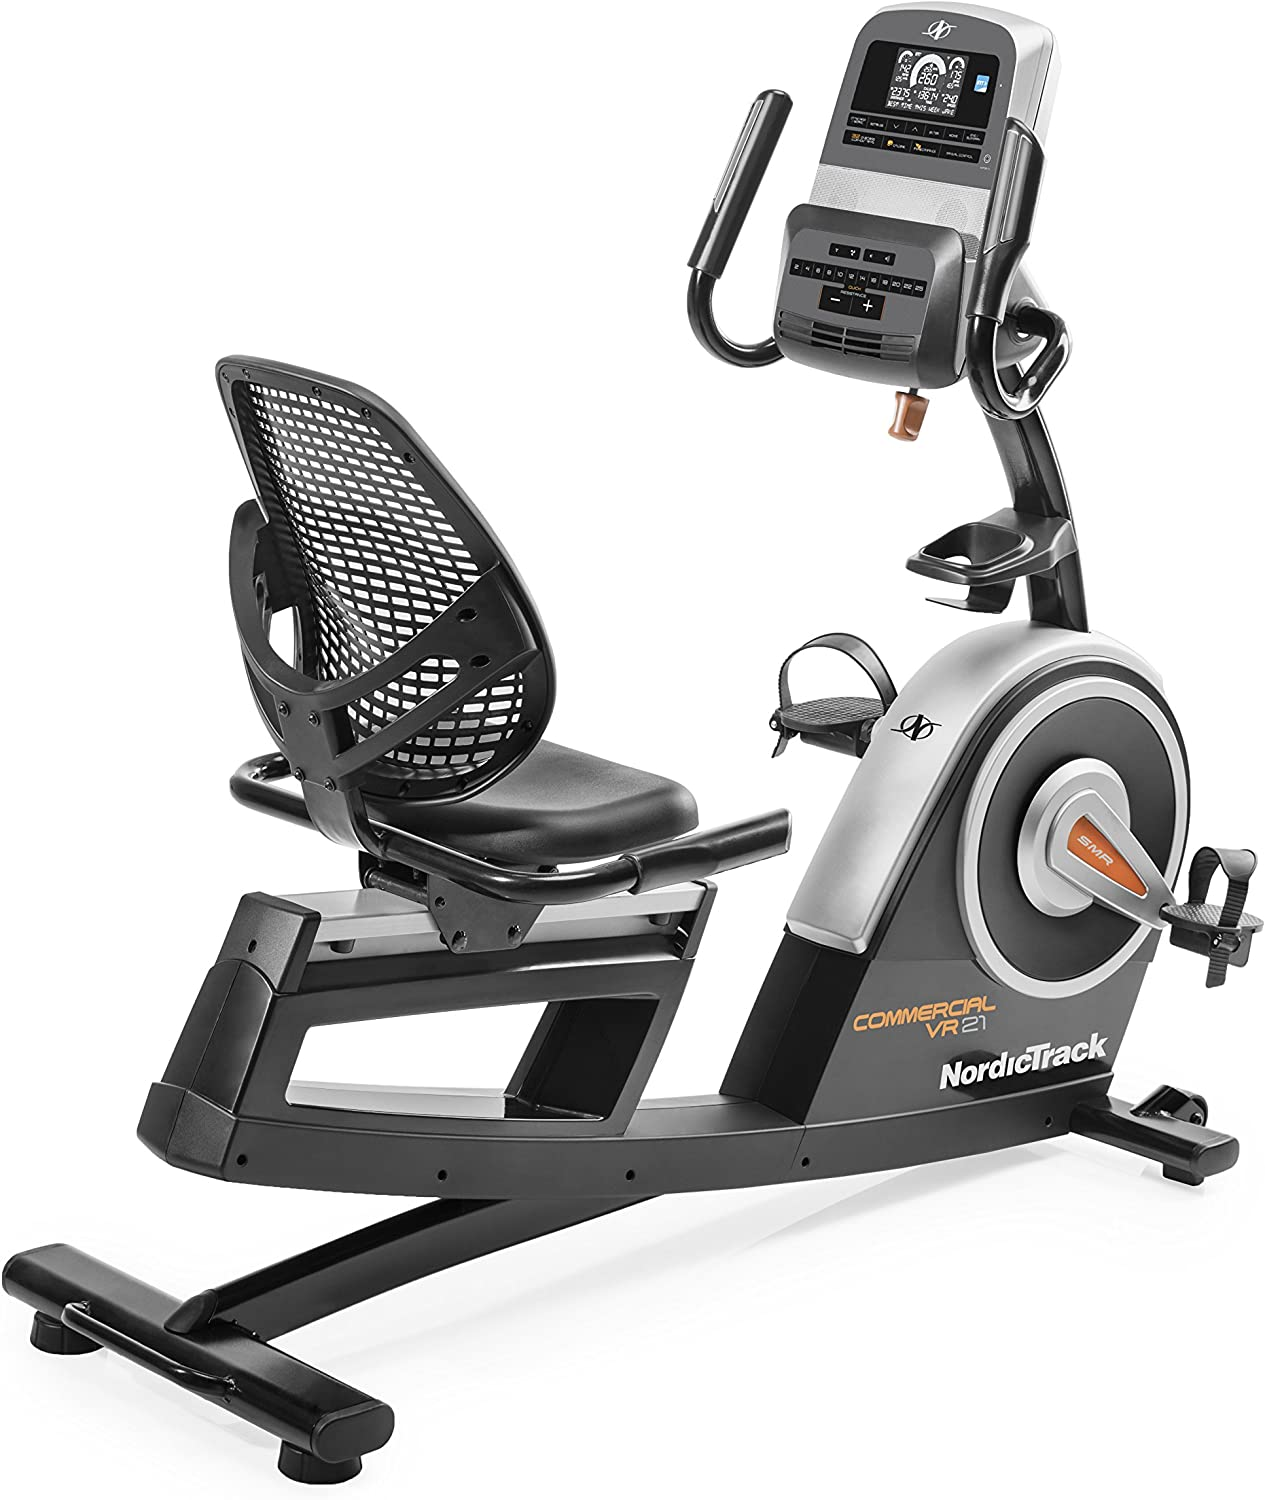 NordicTrack Commercial VR21 Smart Recumbent Exercise Bike with 25 Digital Resistance Levels, Compatible with iFIT Personal Training